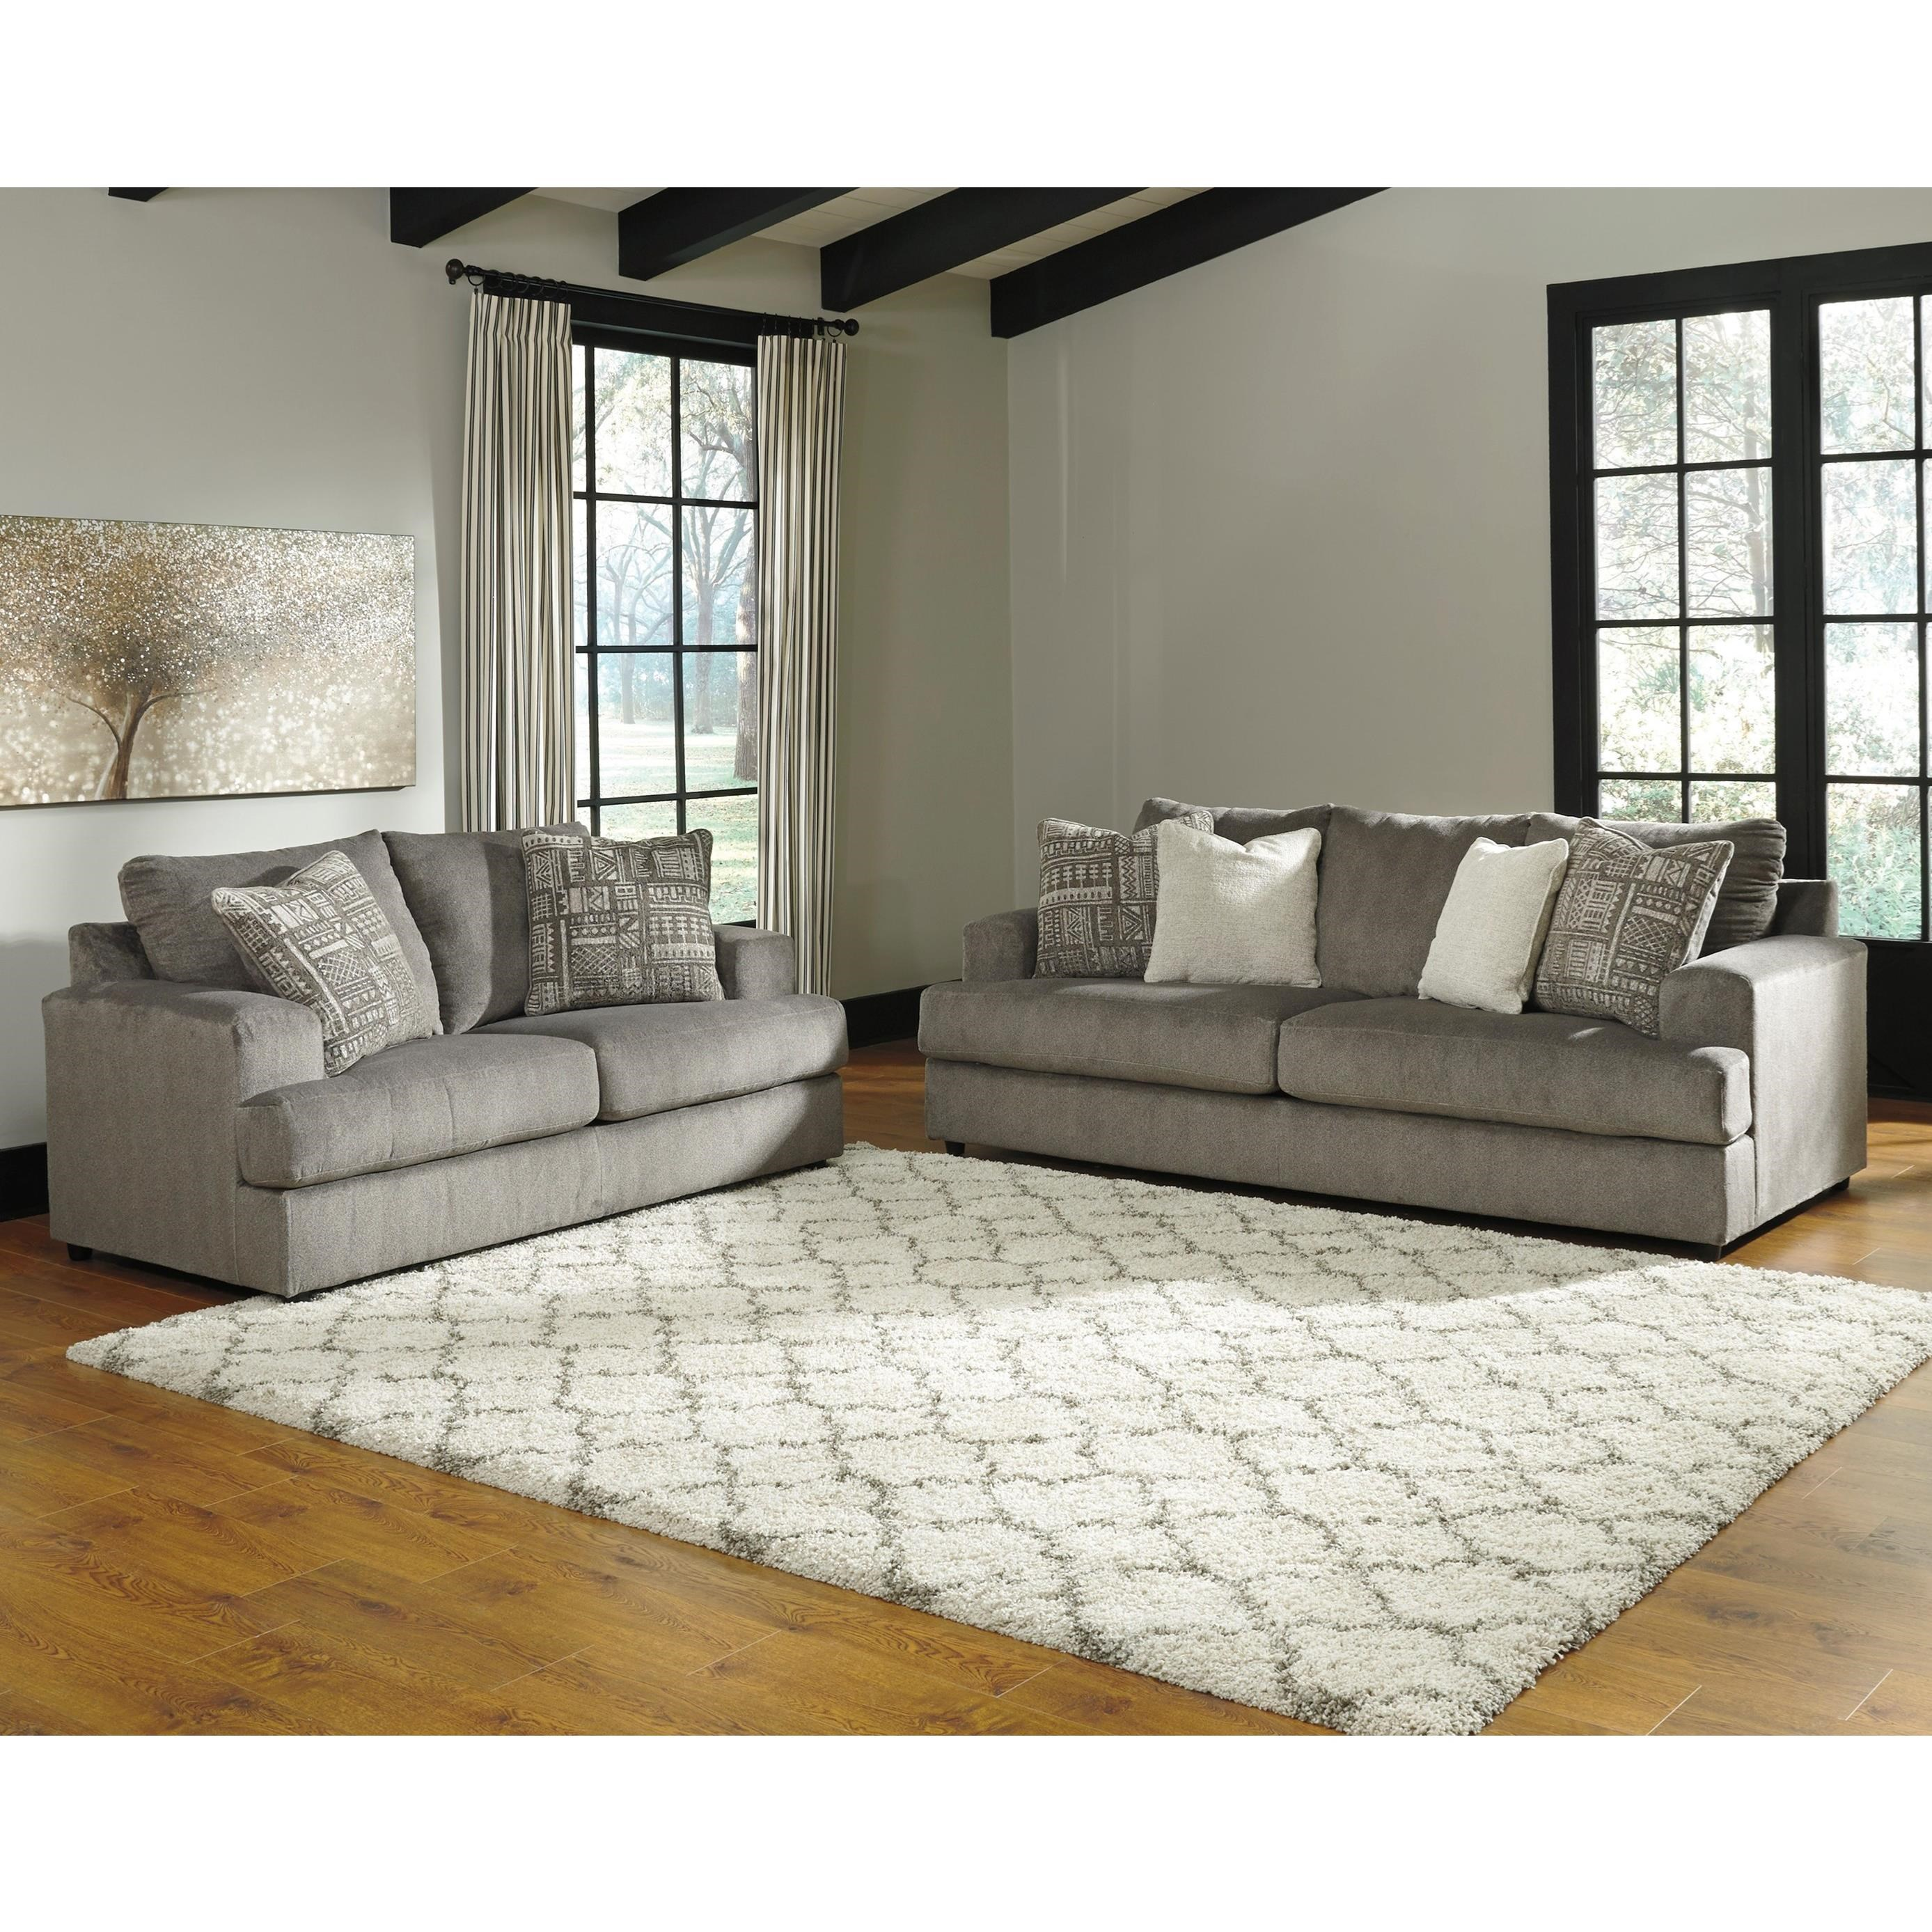 Soletren Stationary Living Room Group by Signature Design by Ashley at Northeast Factory Direct